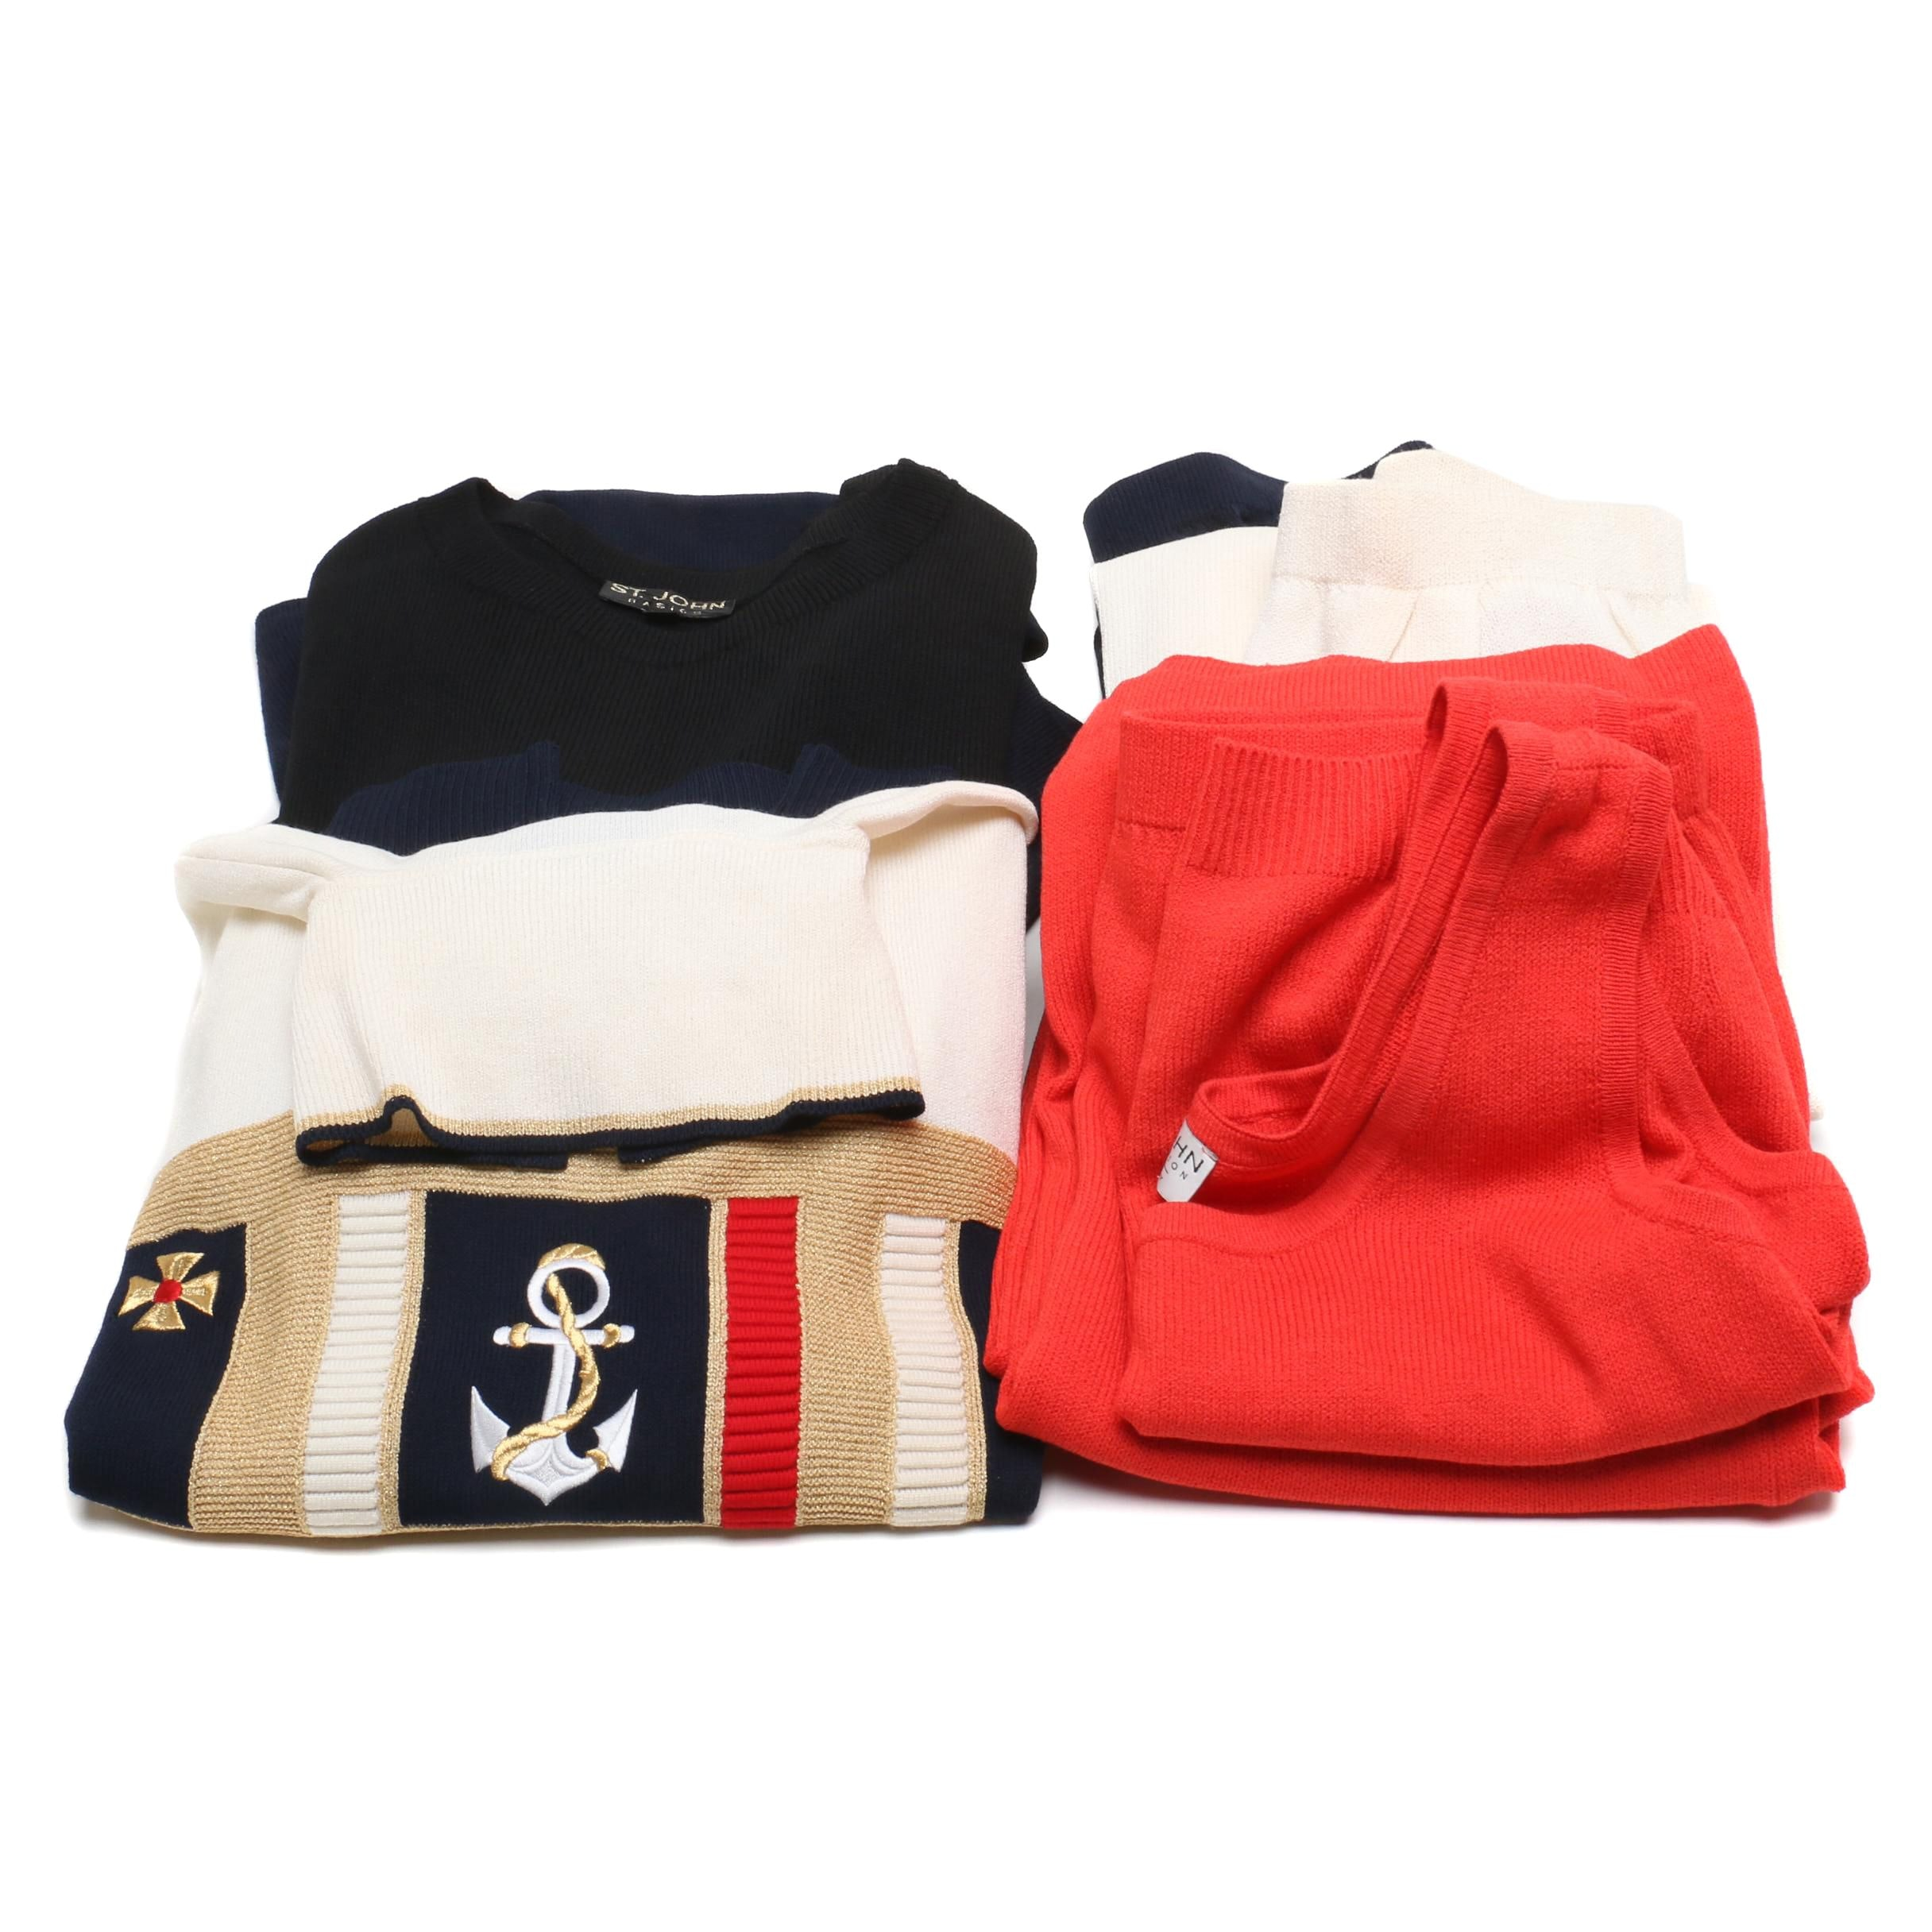 Women's St. John Collection, Basic and Sportswear Knit Separates